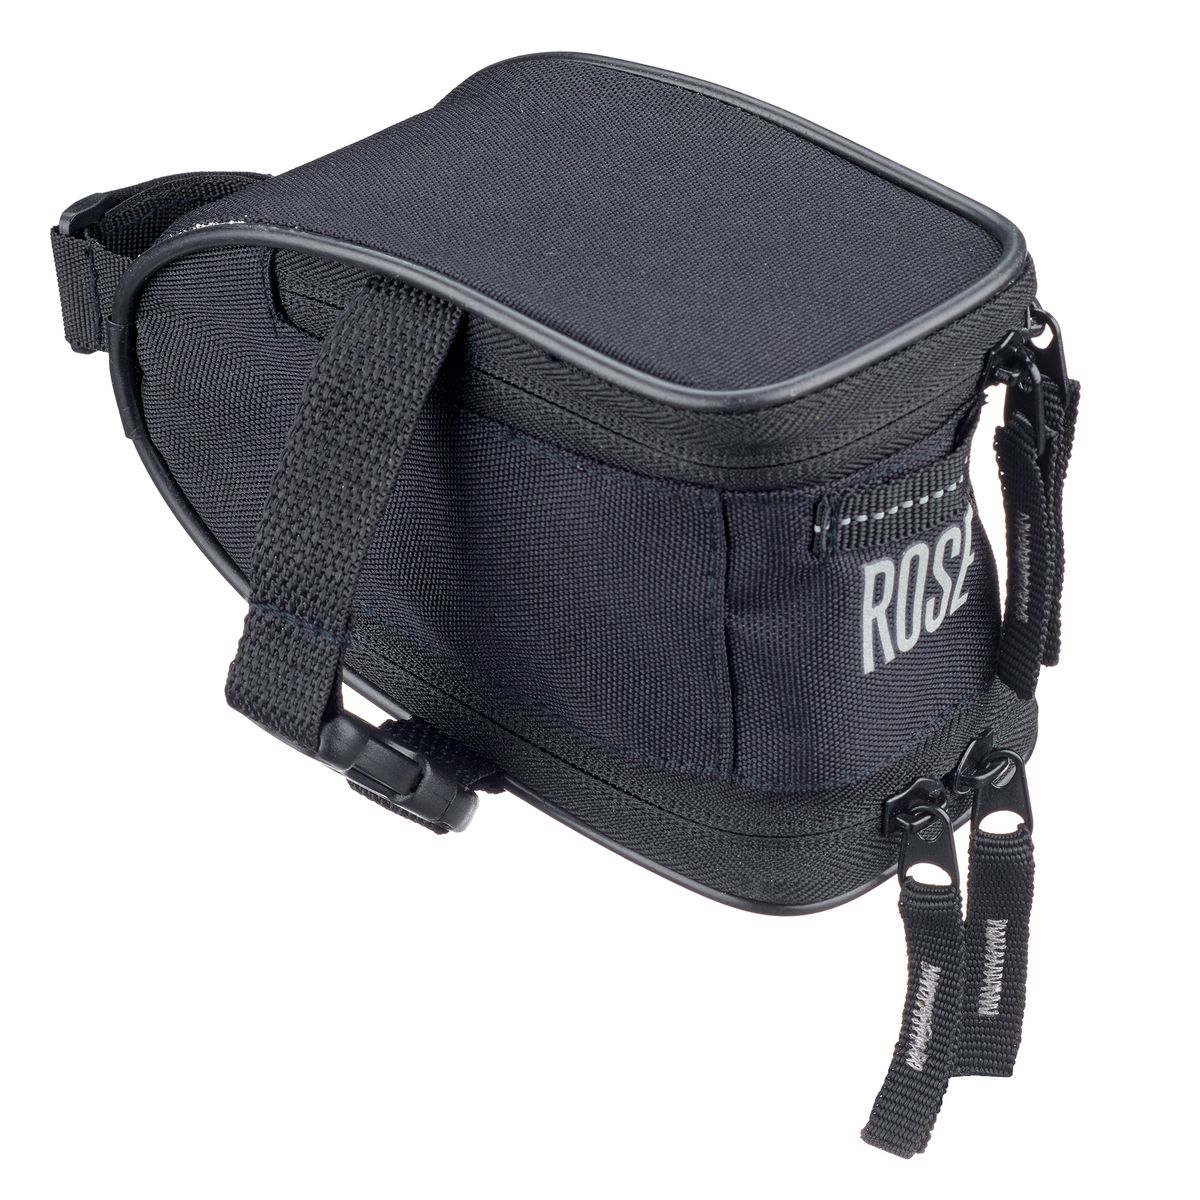 CYW saddle bag